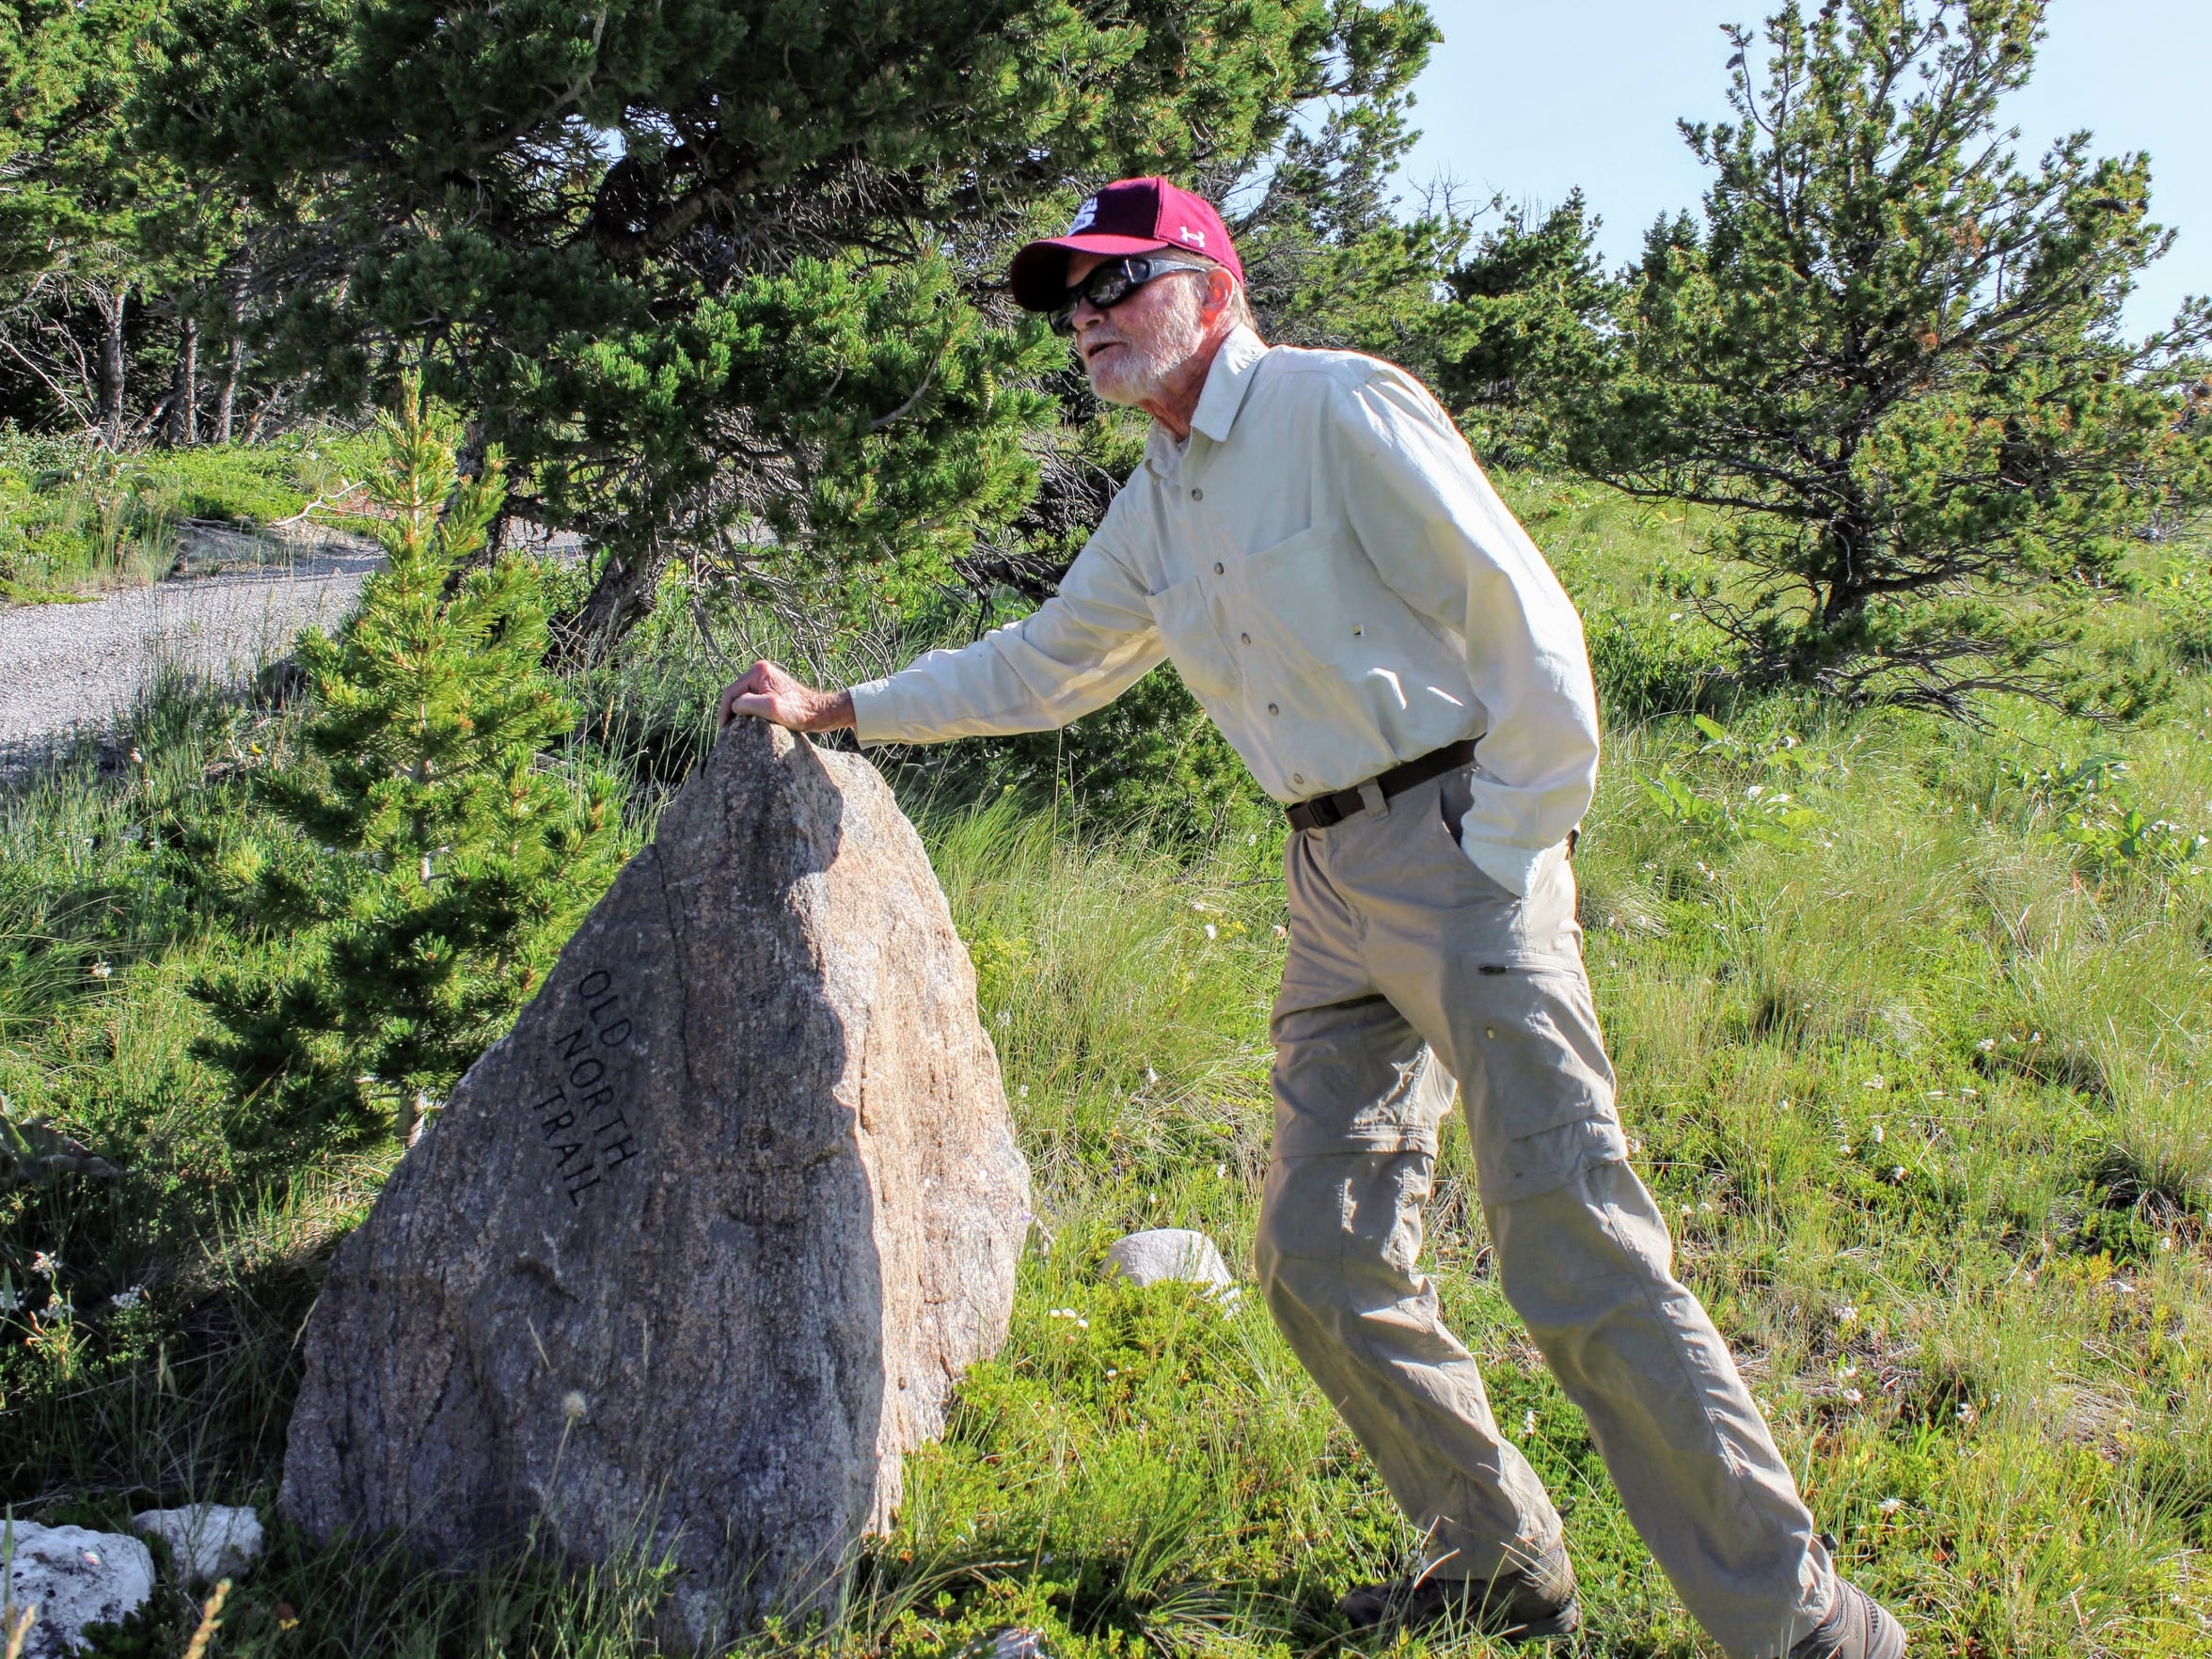 Dave Shea, Old Trail Museum board member and naturalist, stands with marker 13 on the Old North Trail. Local residents of Teton County got together in 1997 to place 23 of these stone markers along the Old North Trail to mark its location for years to come.